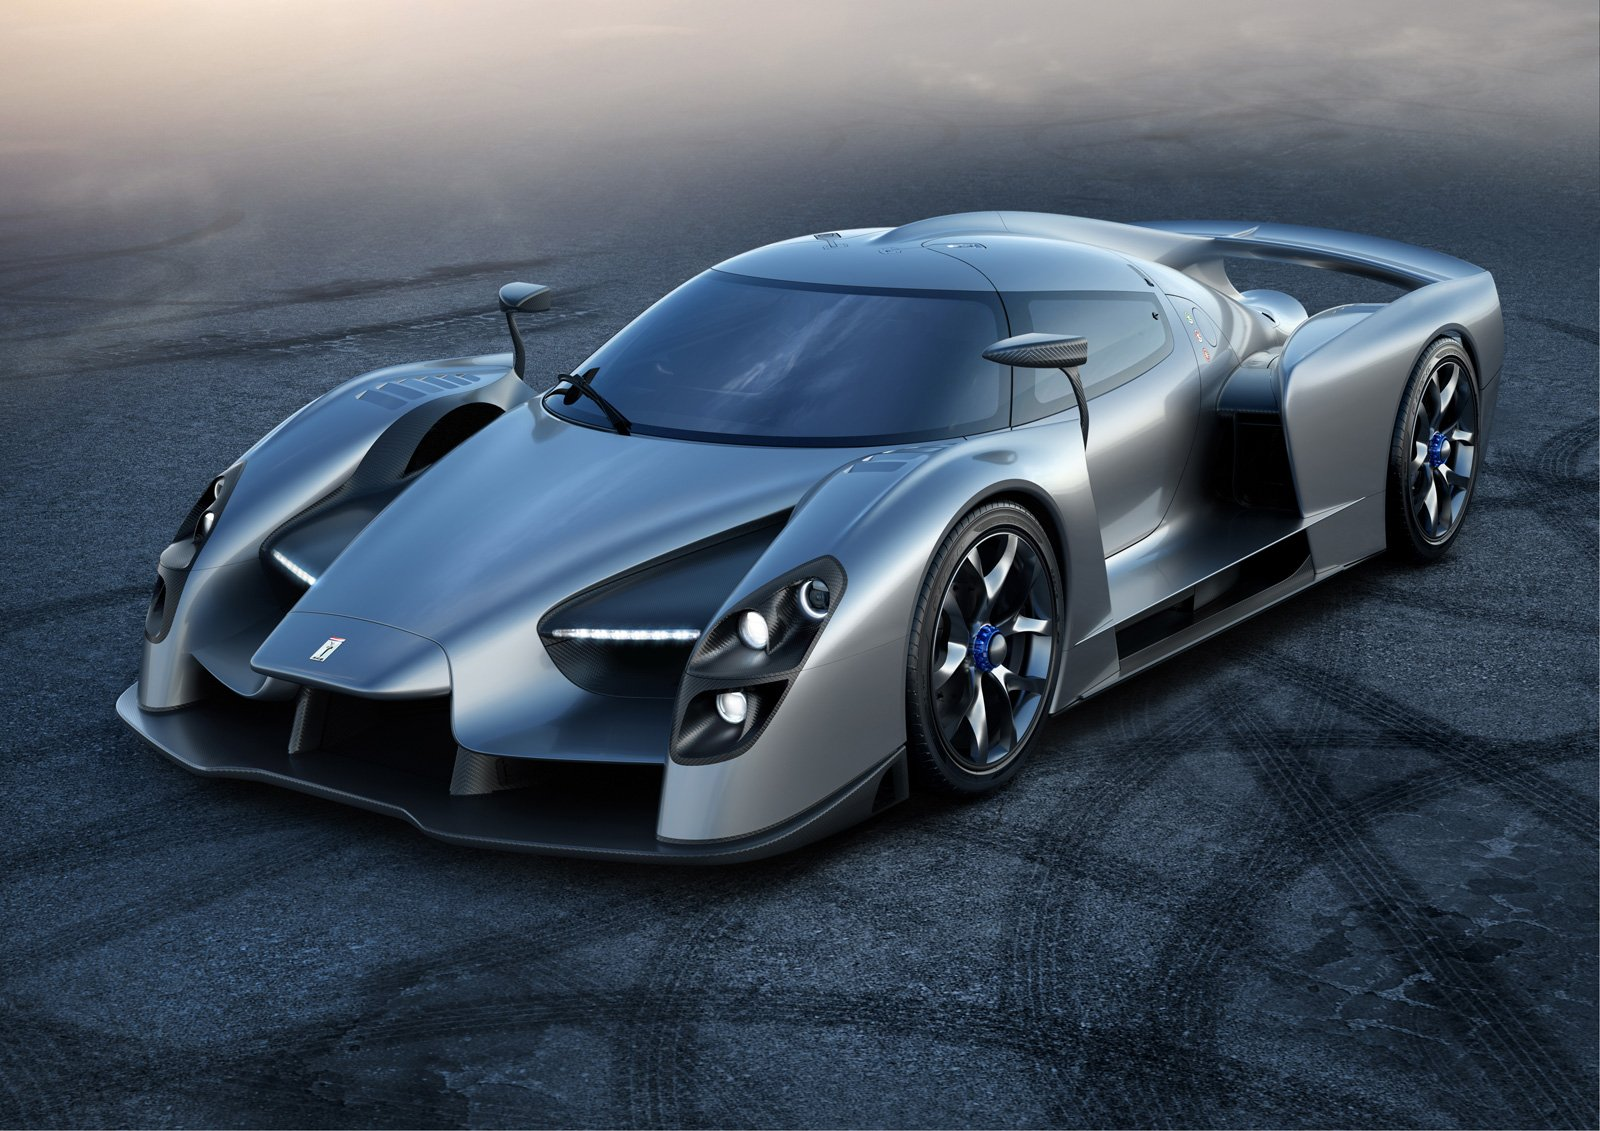 american supercar claims to be faster than porsche 918 spyder on